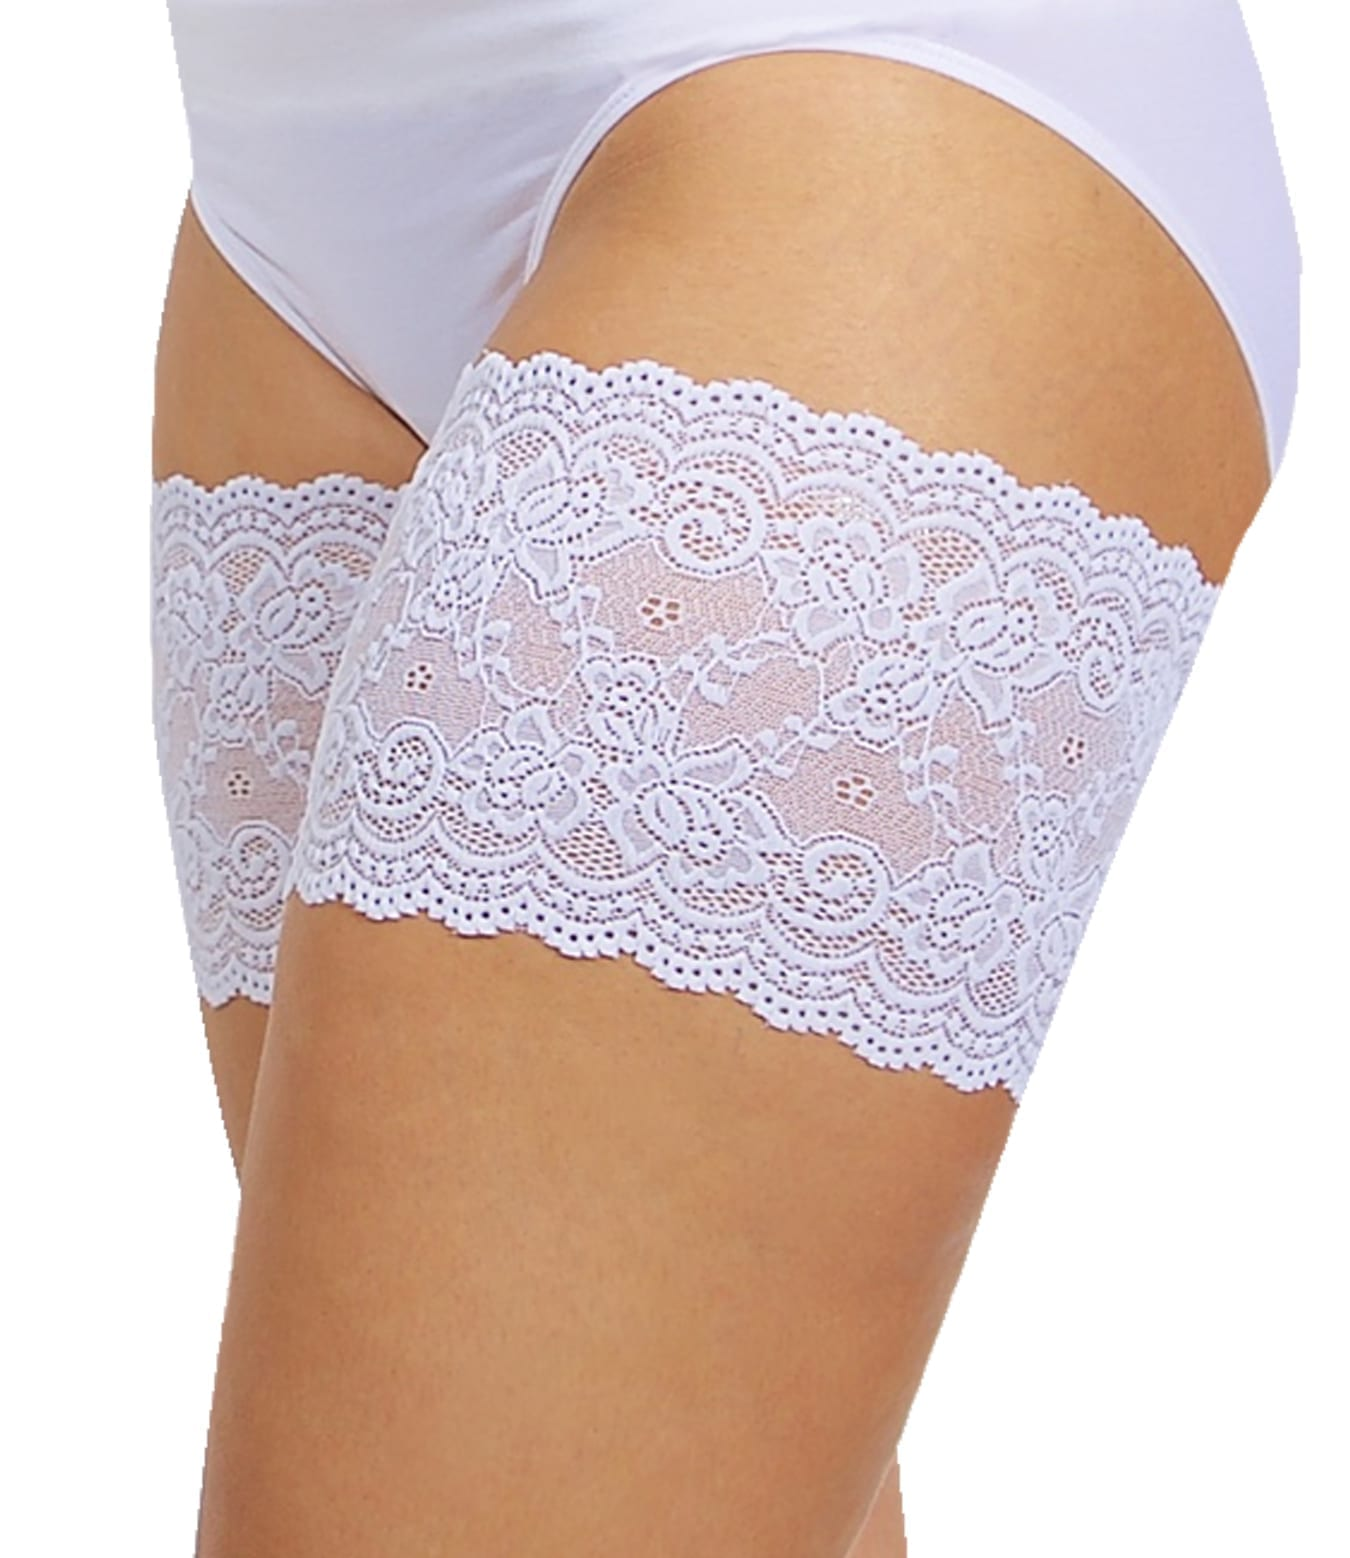 Cute white Bandelettes anti chafing thigh bands, model Onyx